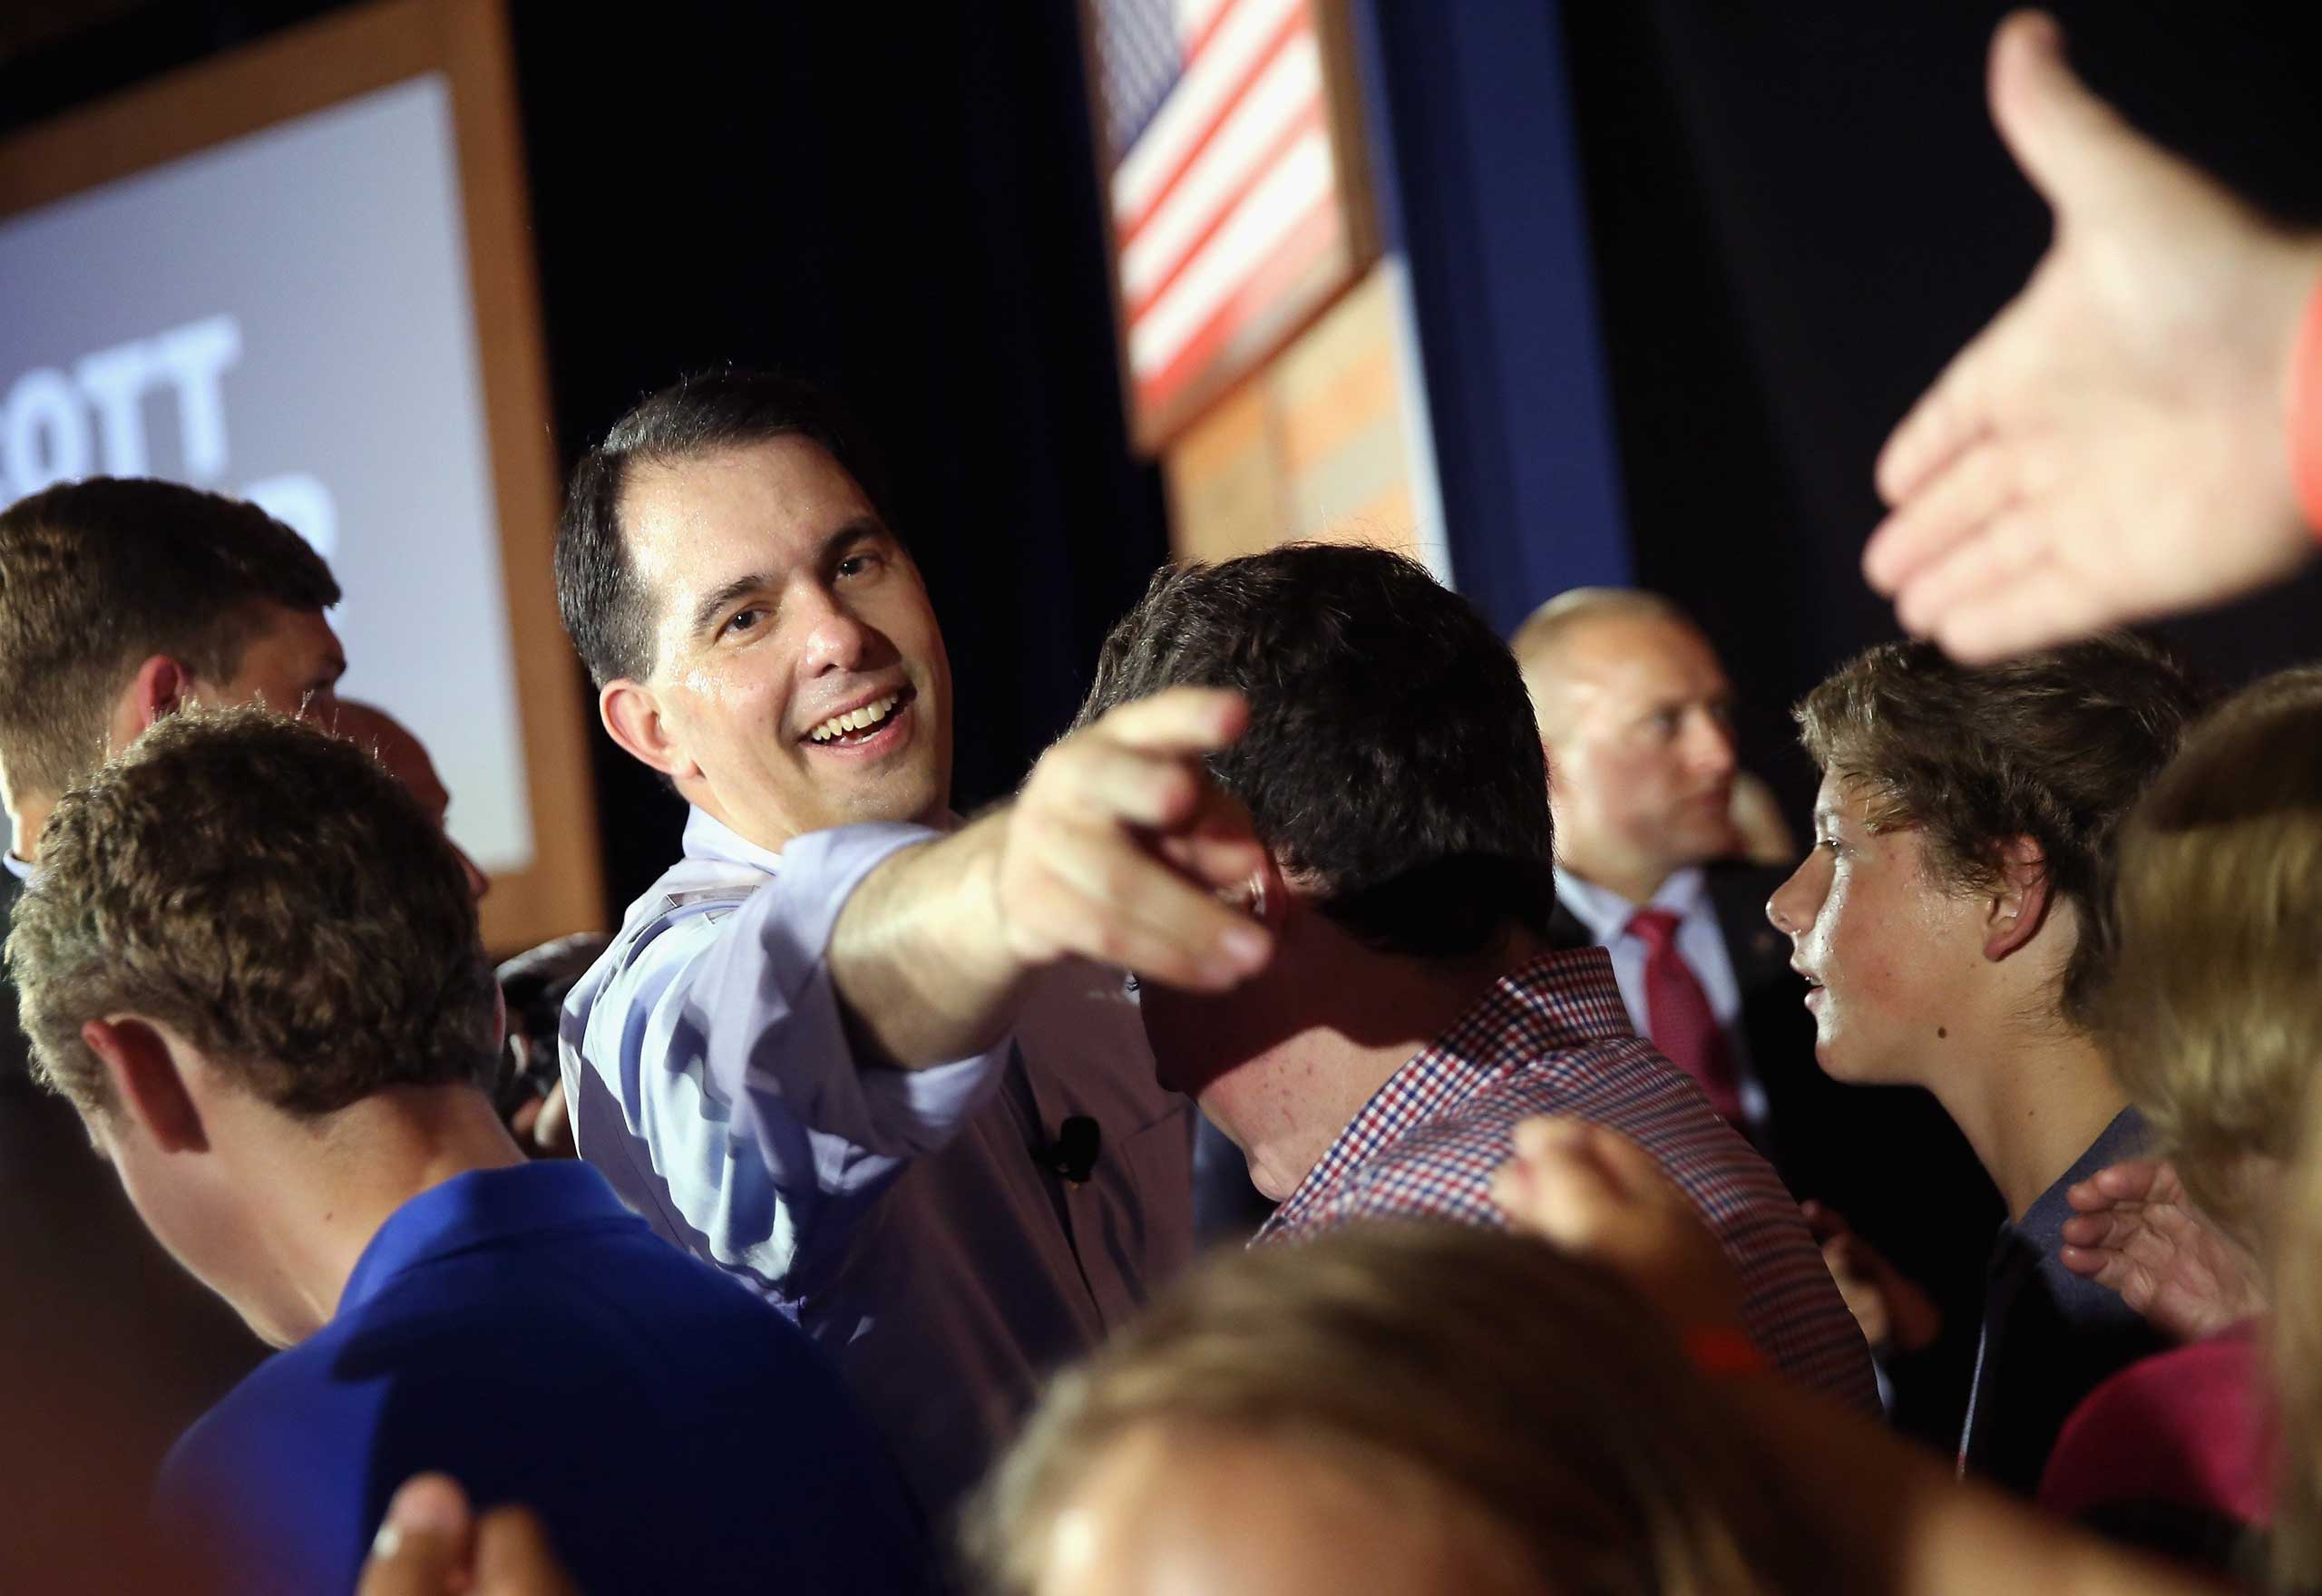 Wisconsin Governor Scott Walker greets supporters after announcing that he will seek the Republican nomination for president in Waukesha, Wis. on July 13, 2015 .